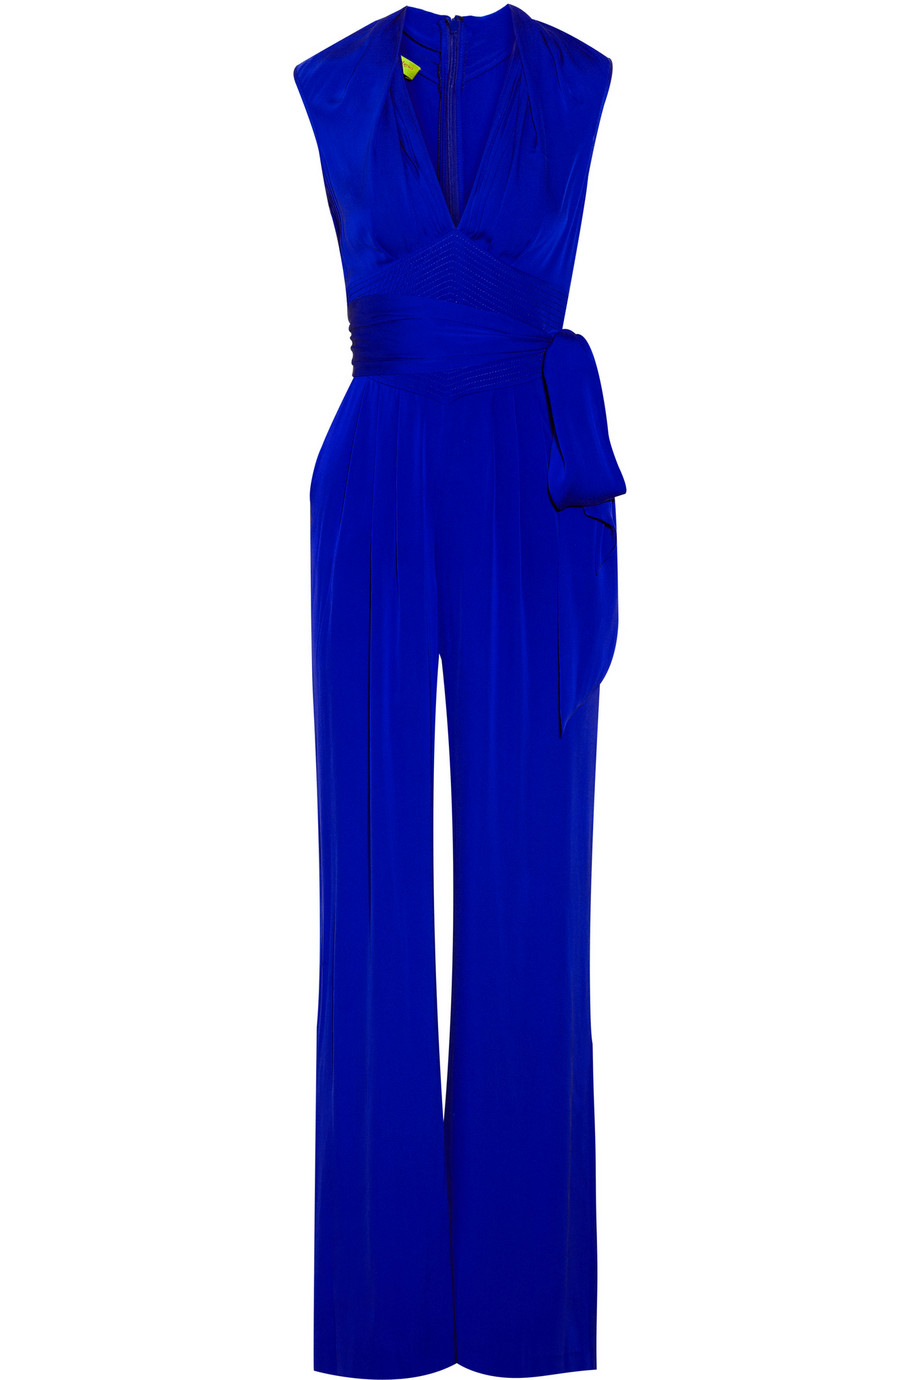 Catherine malandrino Belted Stretchsilk Jumpsuit in Blue | Lyst